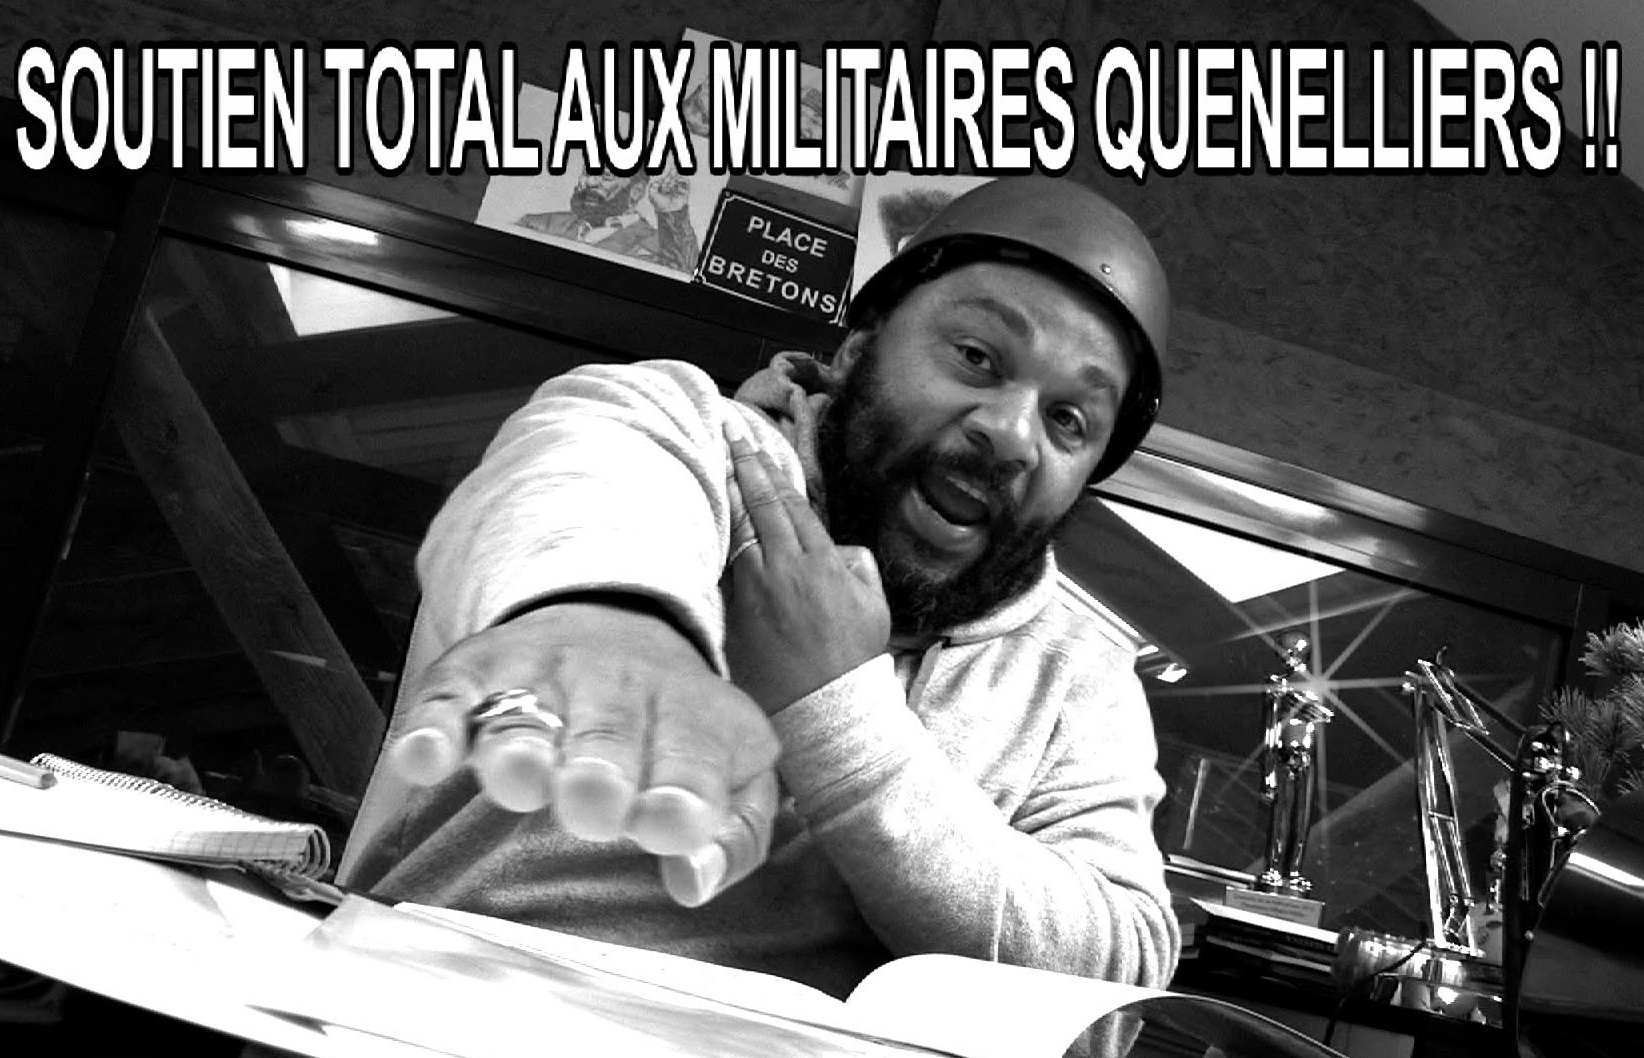 French comedian Dieudonne demonstrating the quenelle, a vaguely Nazi-like gesture whose popularity has soared in France. (YouTube)